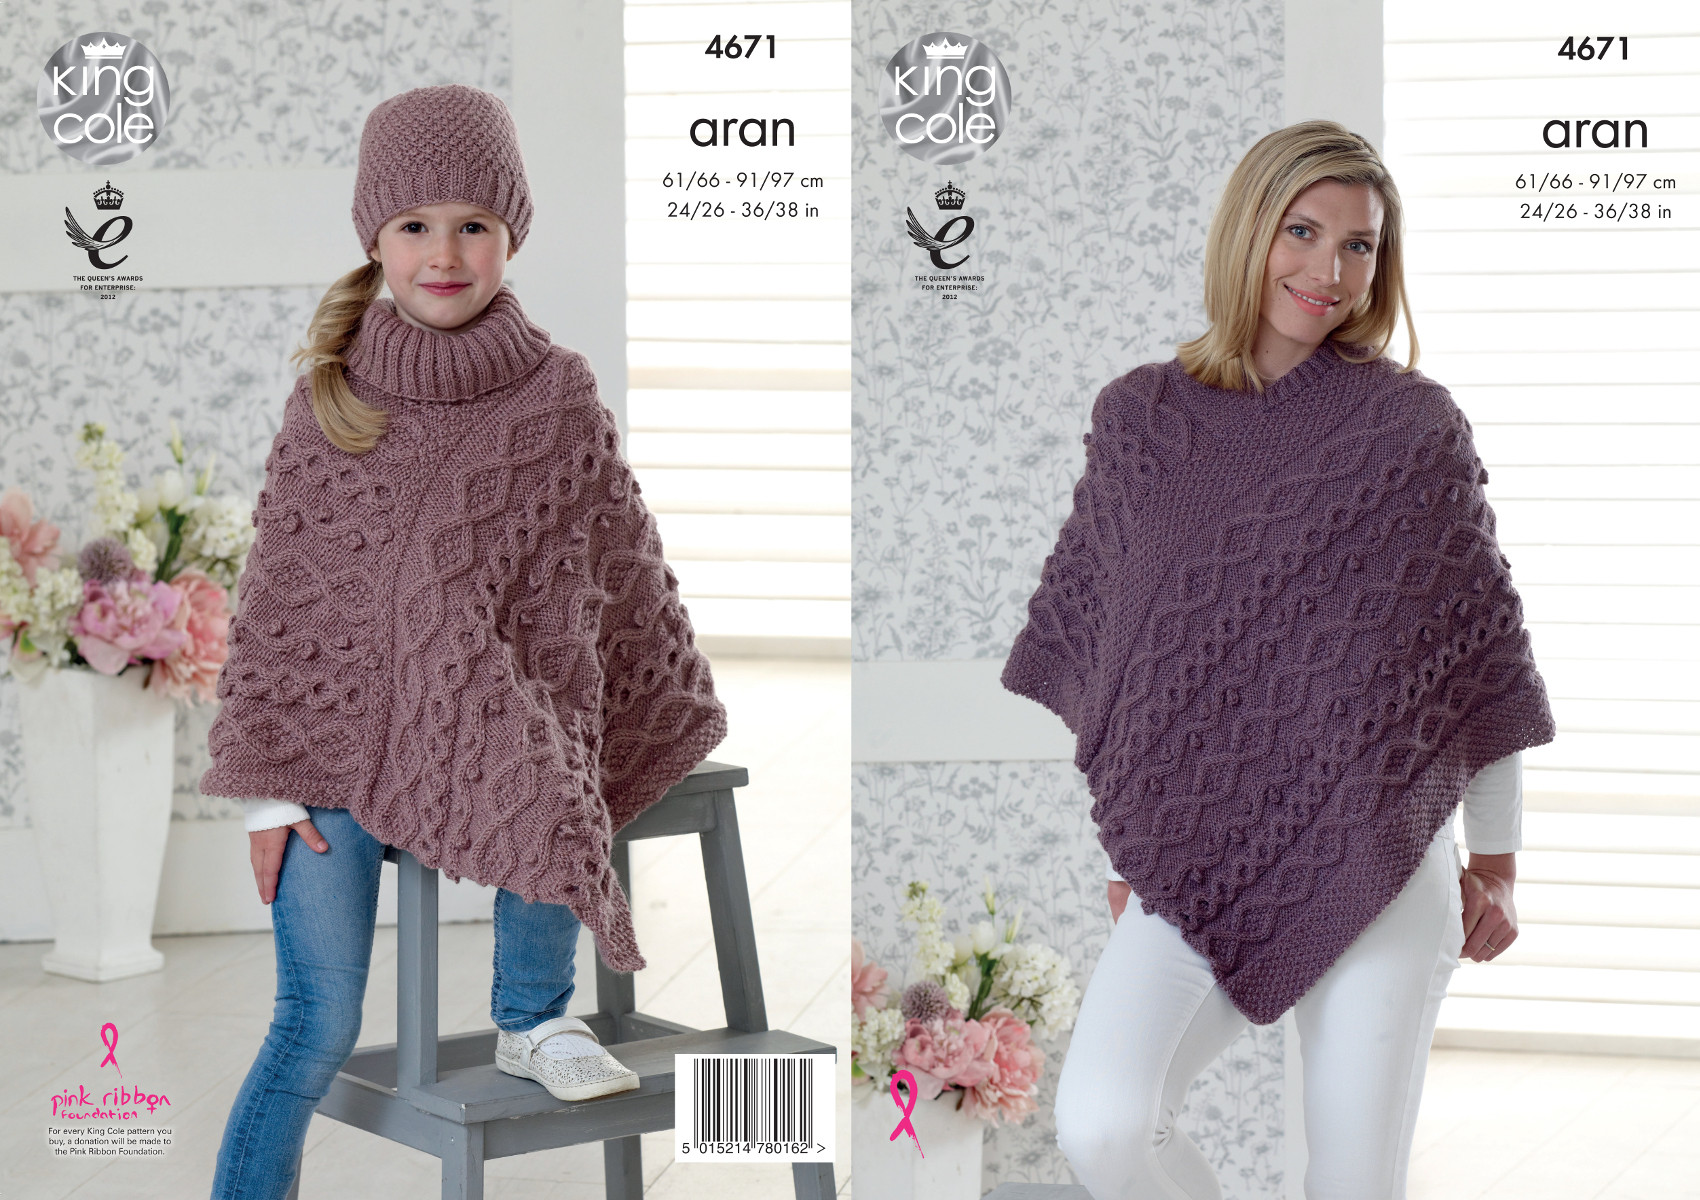 Poncho Knitting Patterns Inspirational Knitting Pattern Womens & Girls Cable Knit Poncho & Hat Of Poncho Knitting Patterns Fresh Click for Close Up Anything and Everything